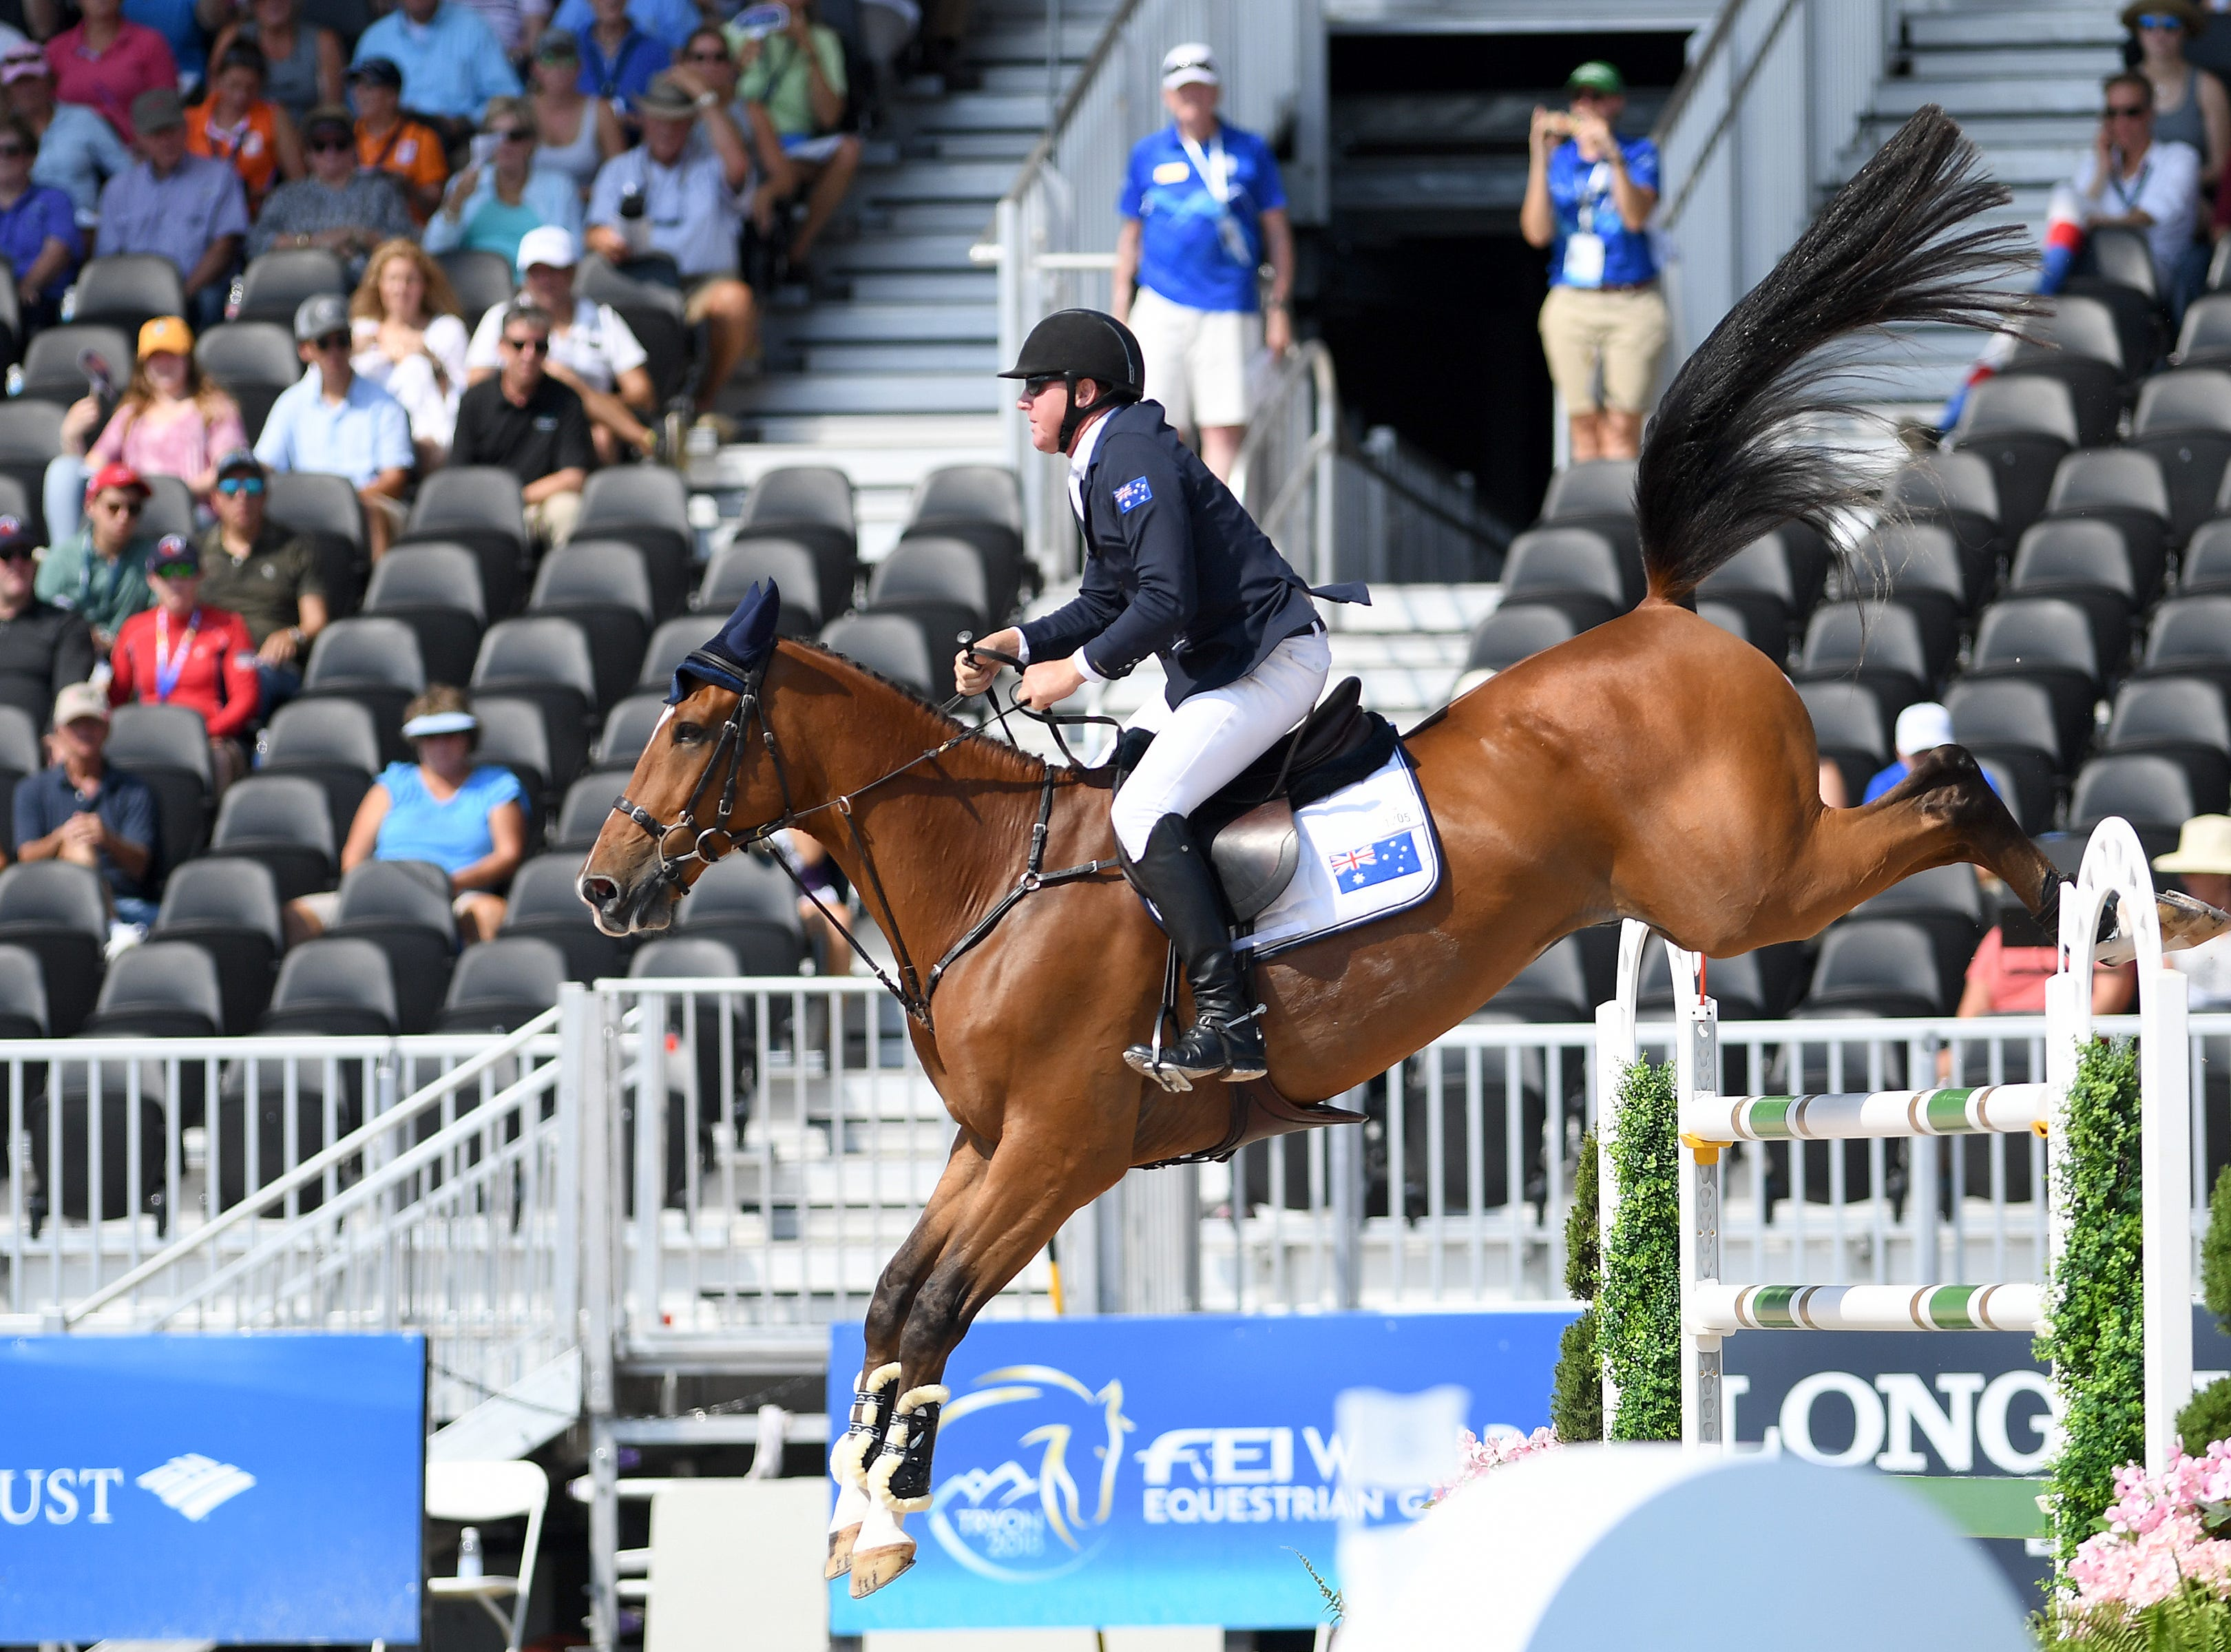 Australia's Scott Keach, on Fedor, competes in the team jumping competition of the FEI World Equestrian Games at the Tryon International Equestrian Center on Sept. 20, 2018.